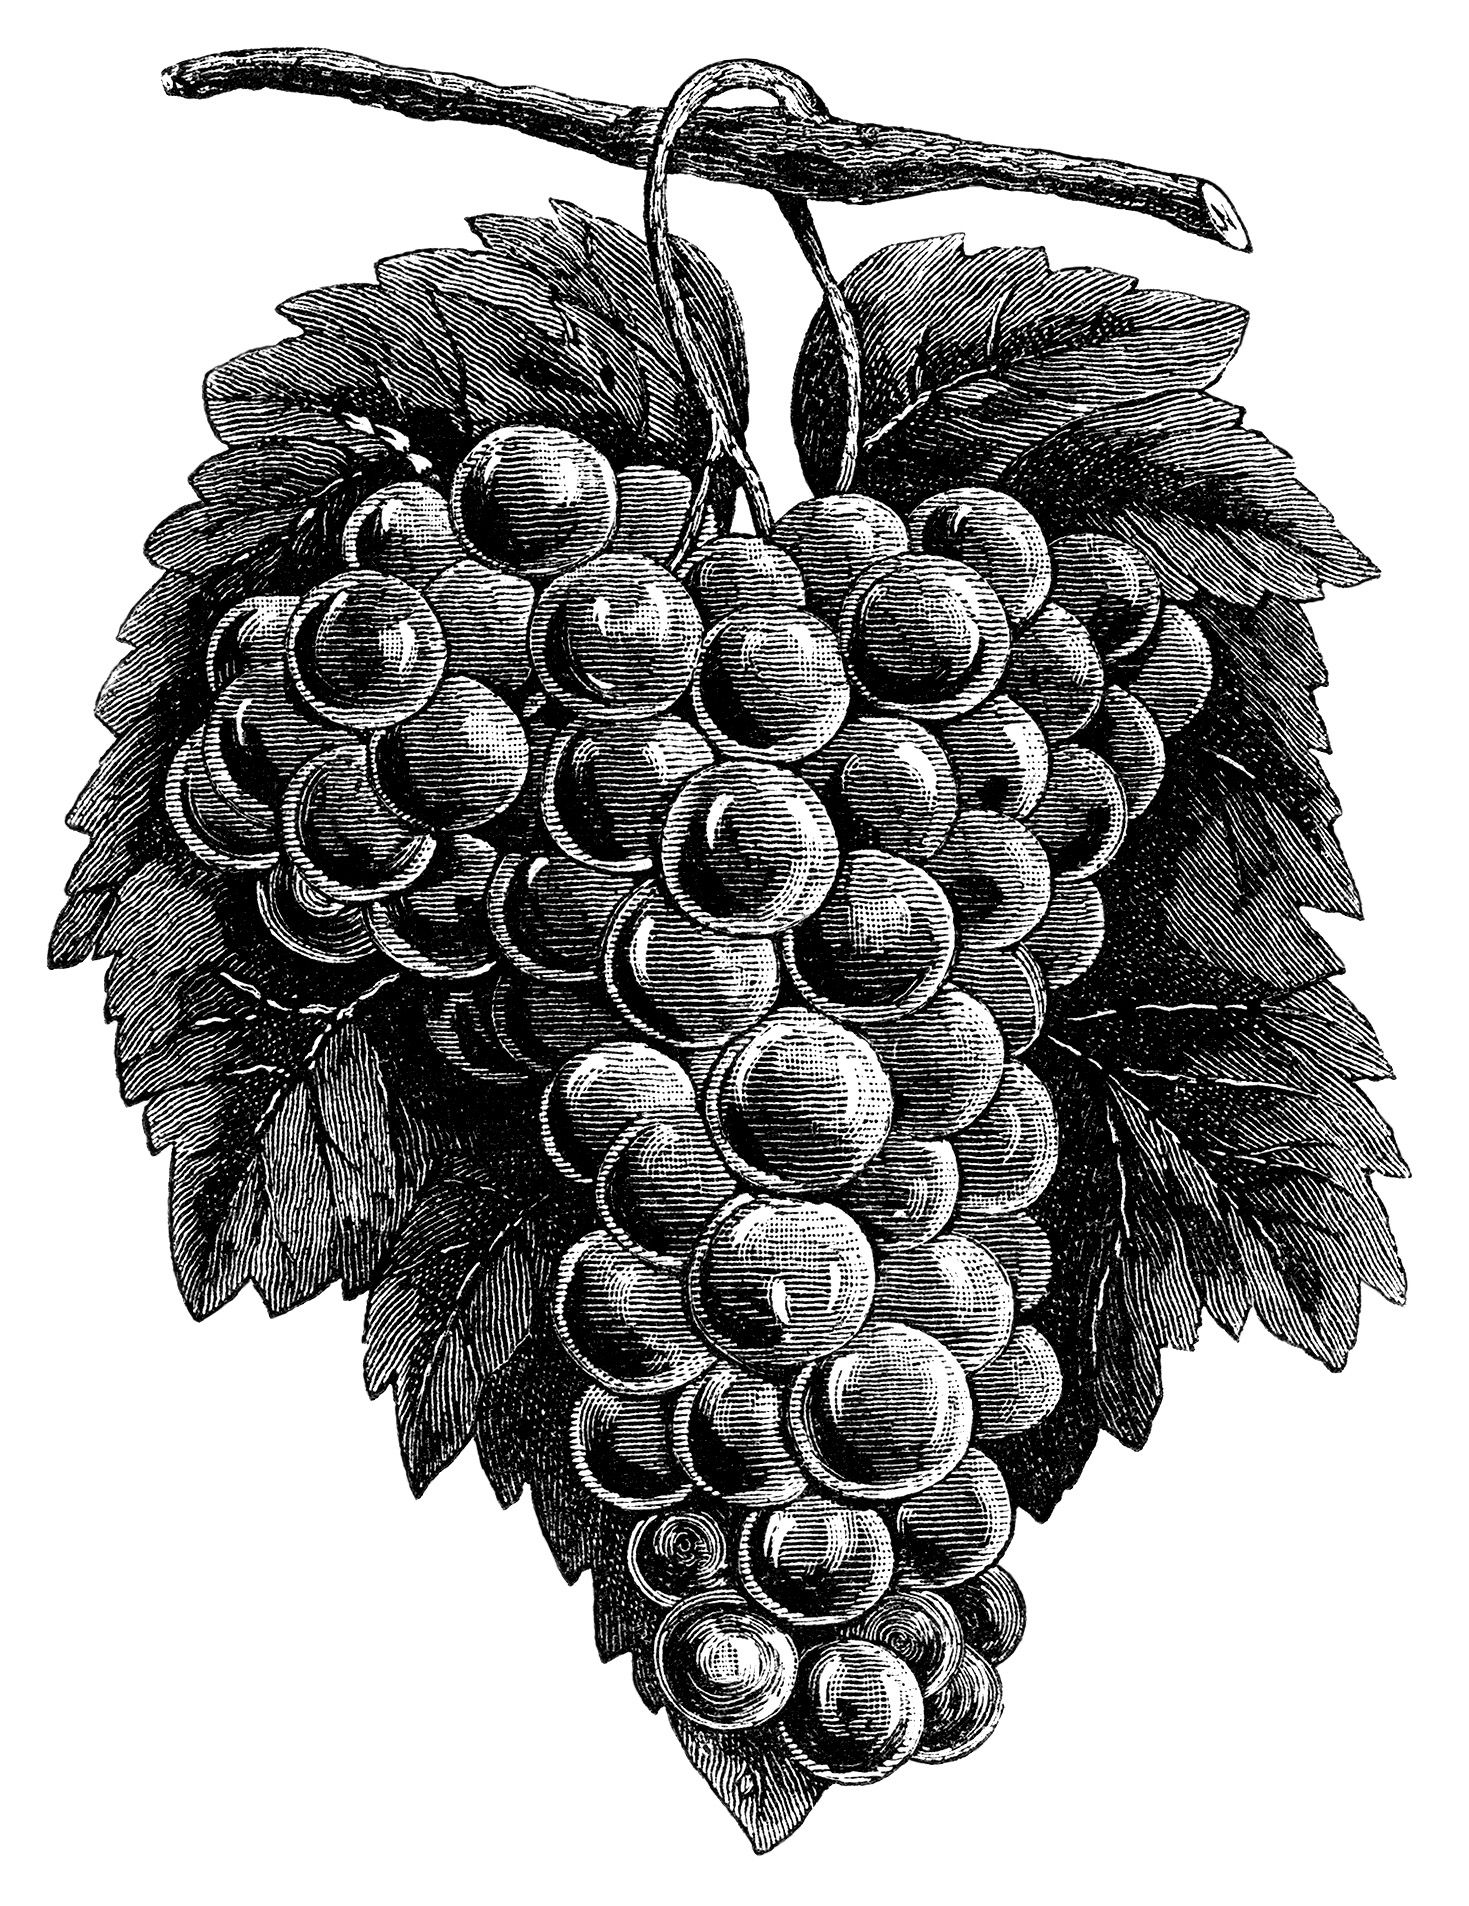 Grape clipart illustration. Cluster grapes black and